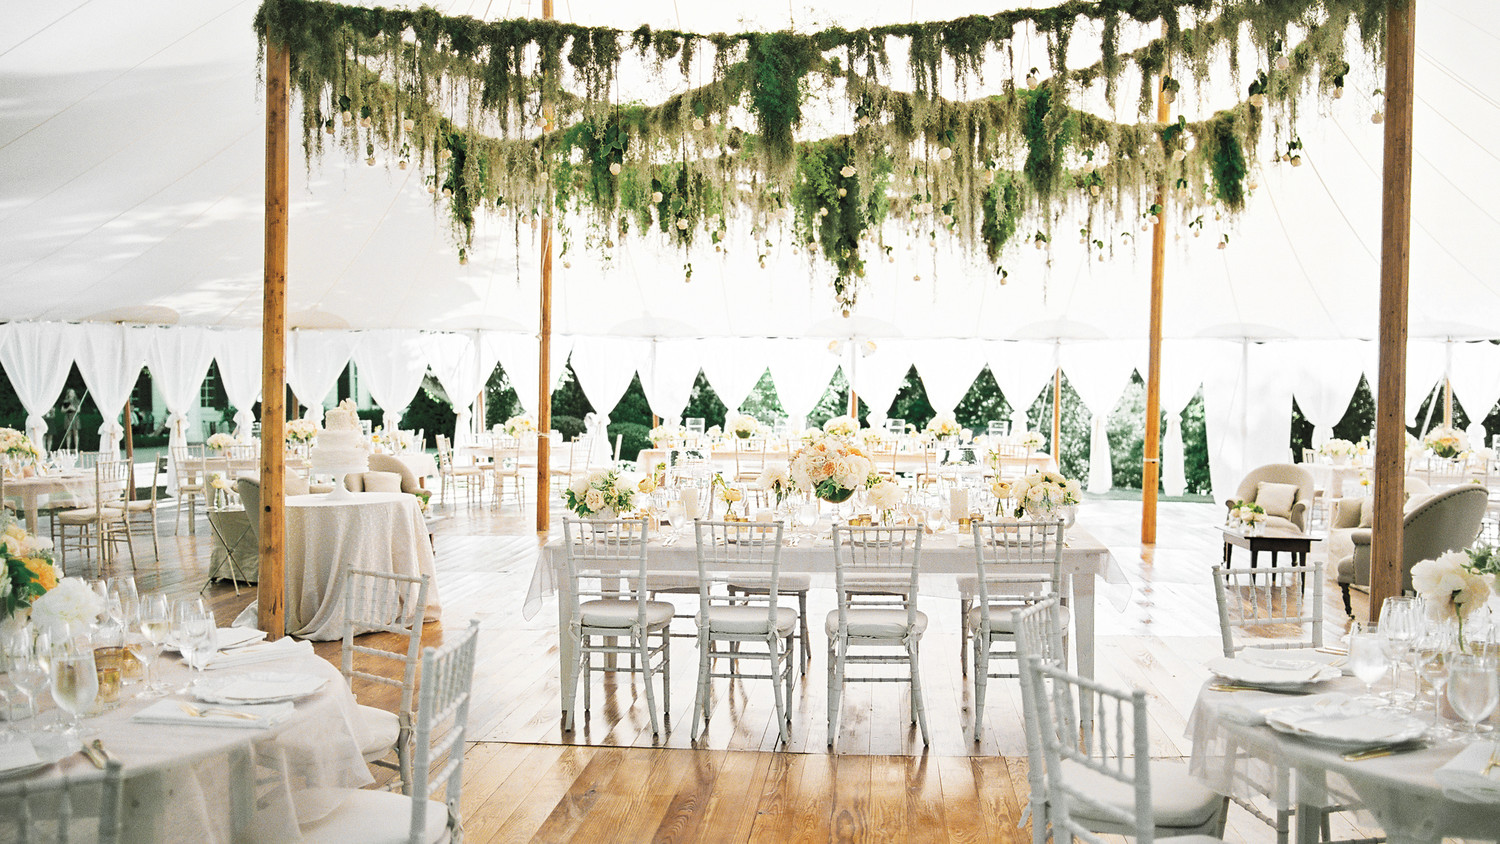 28 tent decorating ideas that will upgrade your wedding reception 28 tent decorating ideas that will upgrade your wedding reception martha stewart weddings junglespirit Choice Image